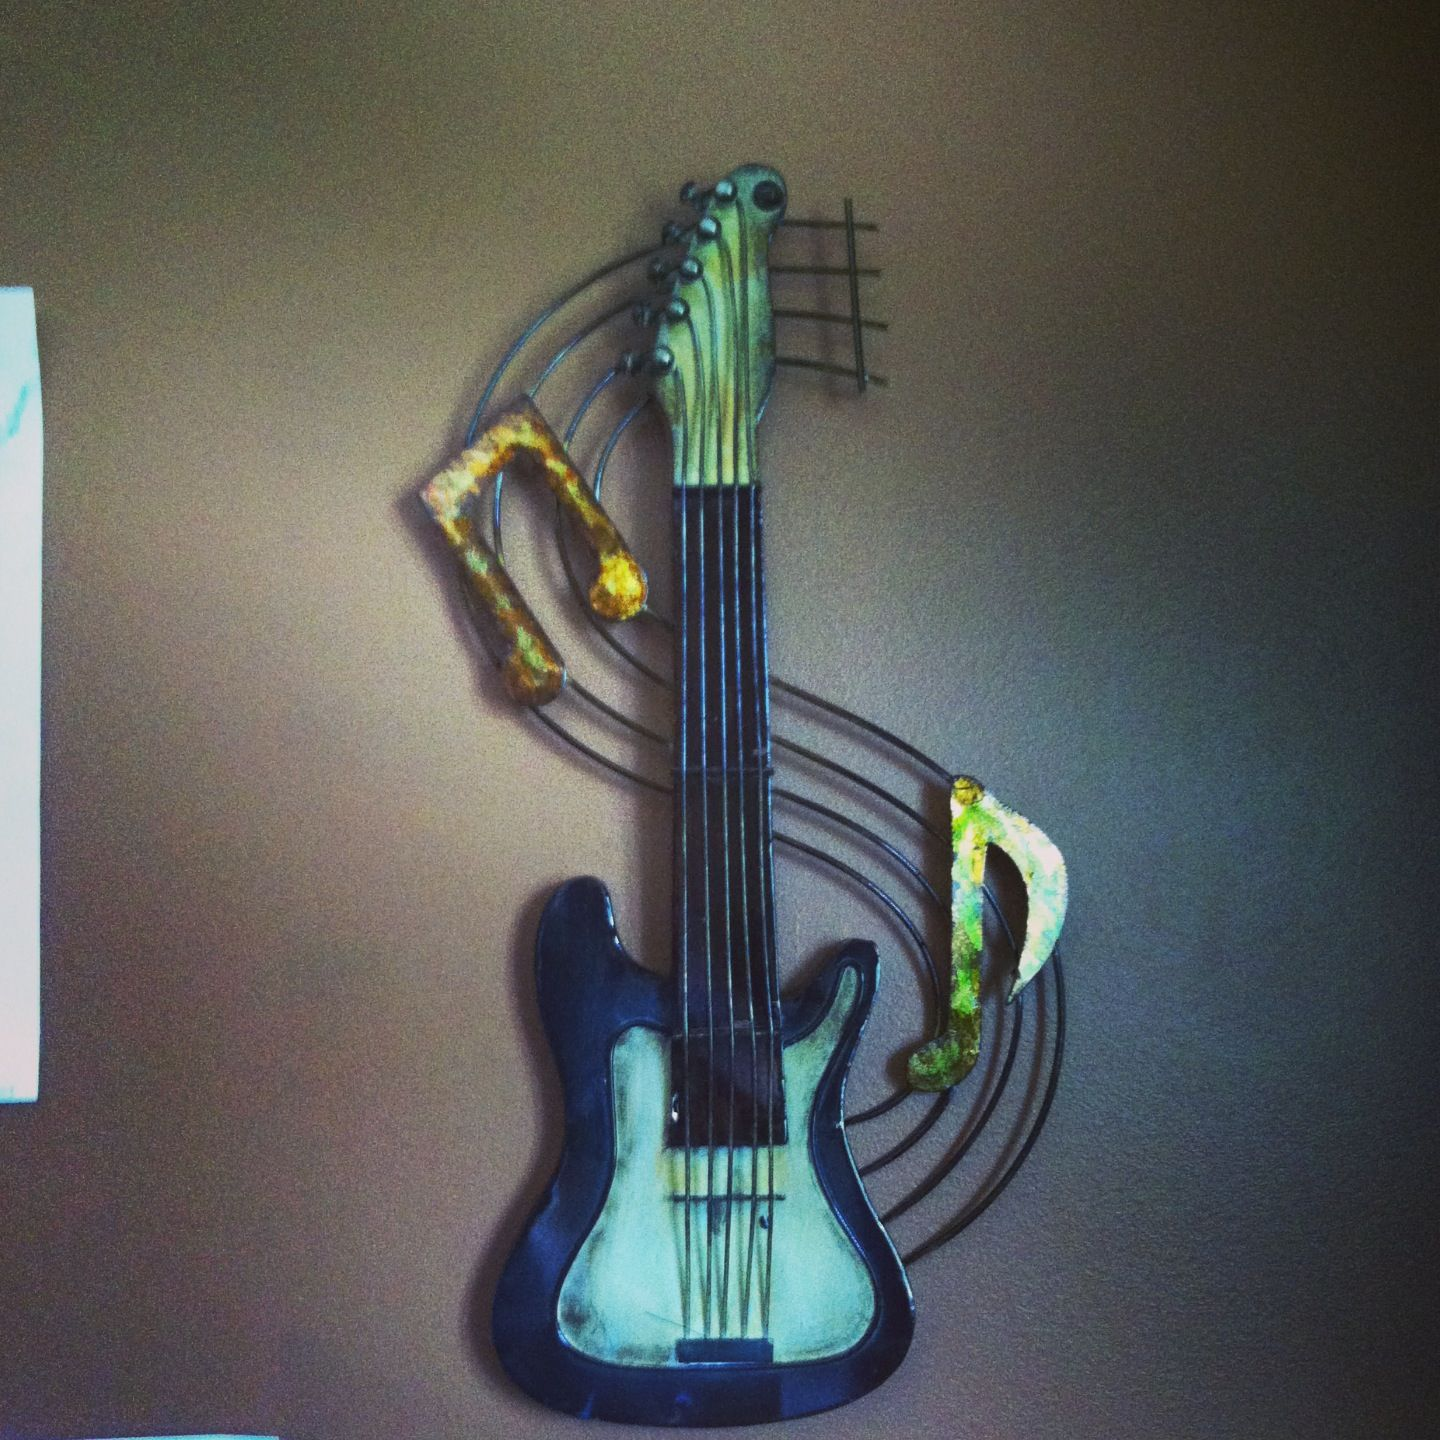 Guitar Decor For Bedroom Guitar Wall Hanging From Bed Bath And Beyond Music